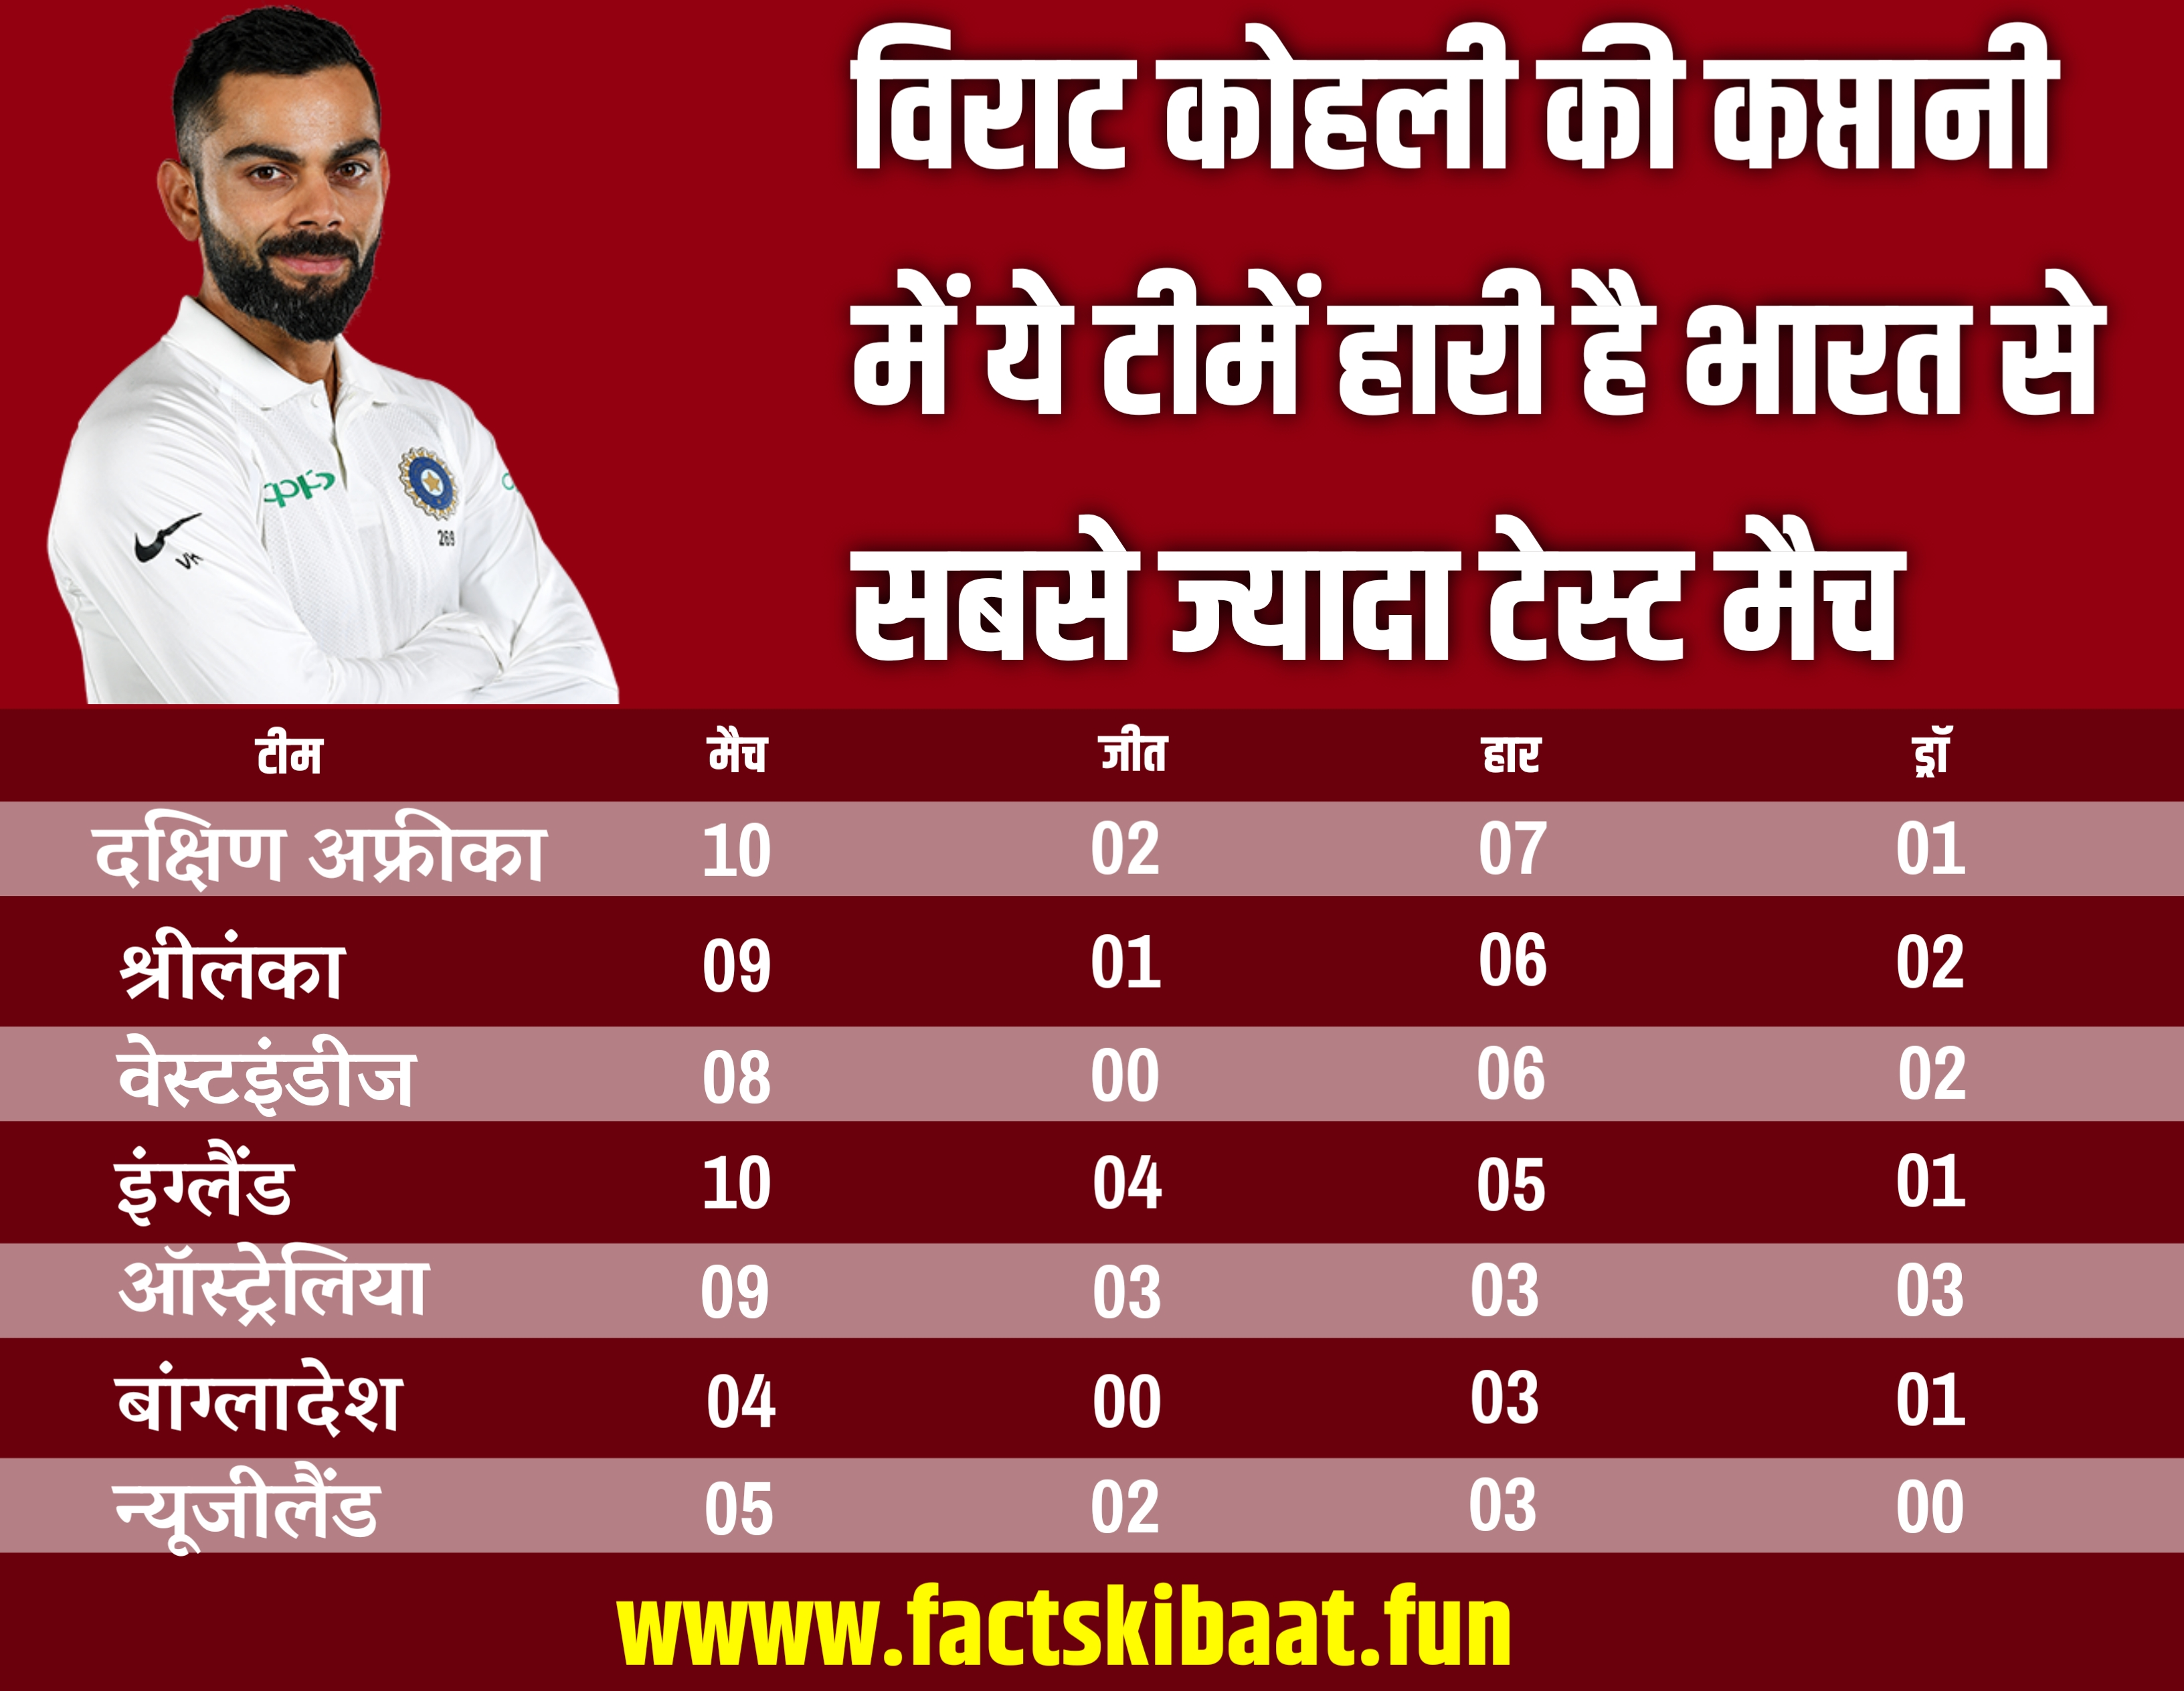 Most test wins under virat kohli's Captaincy